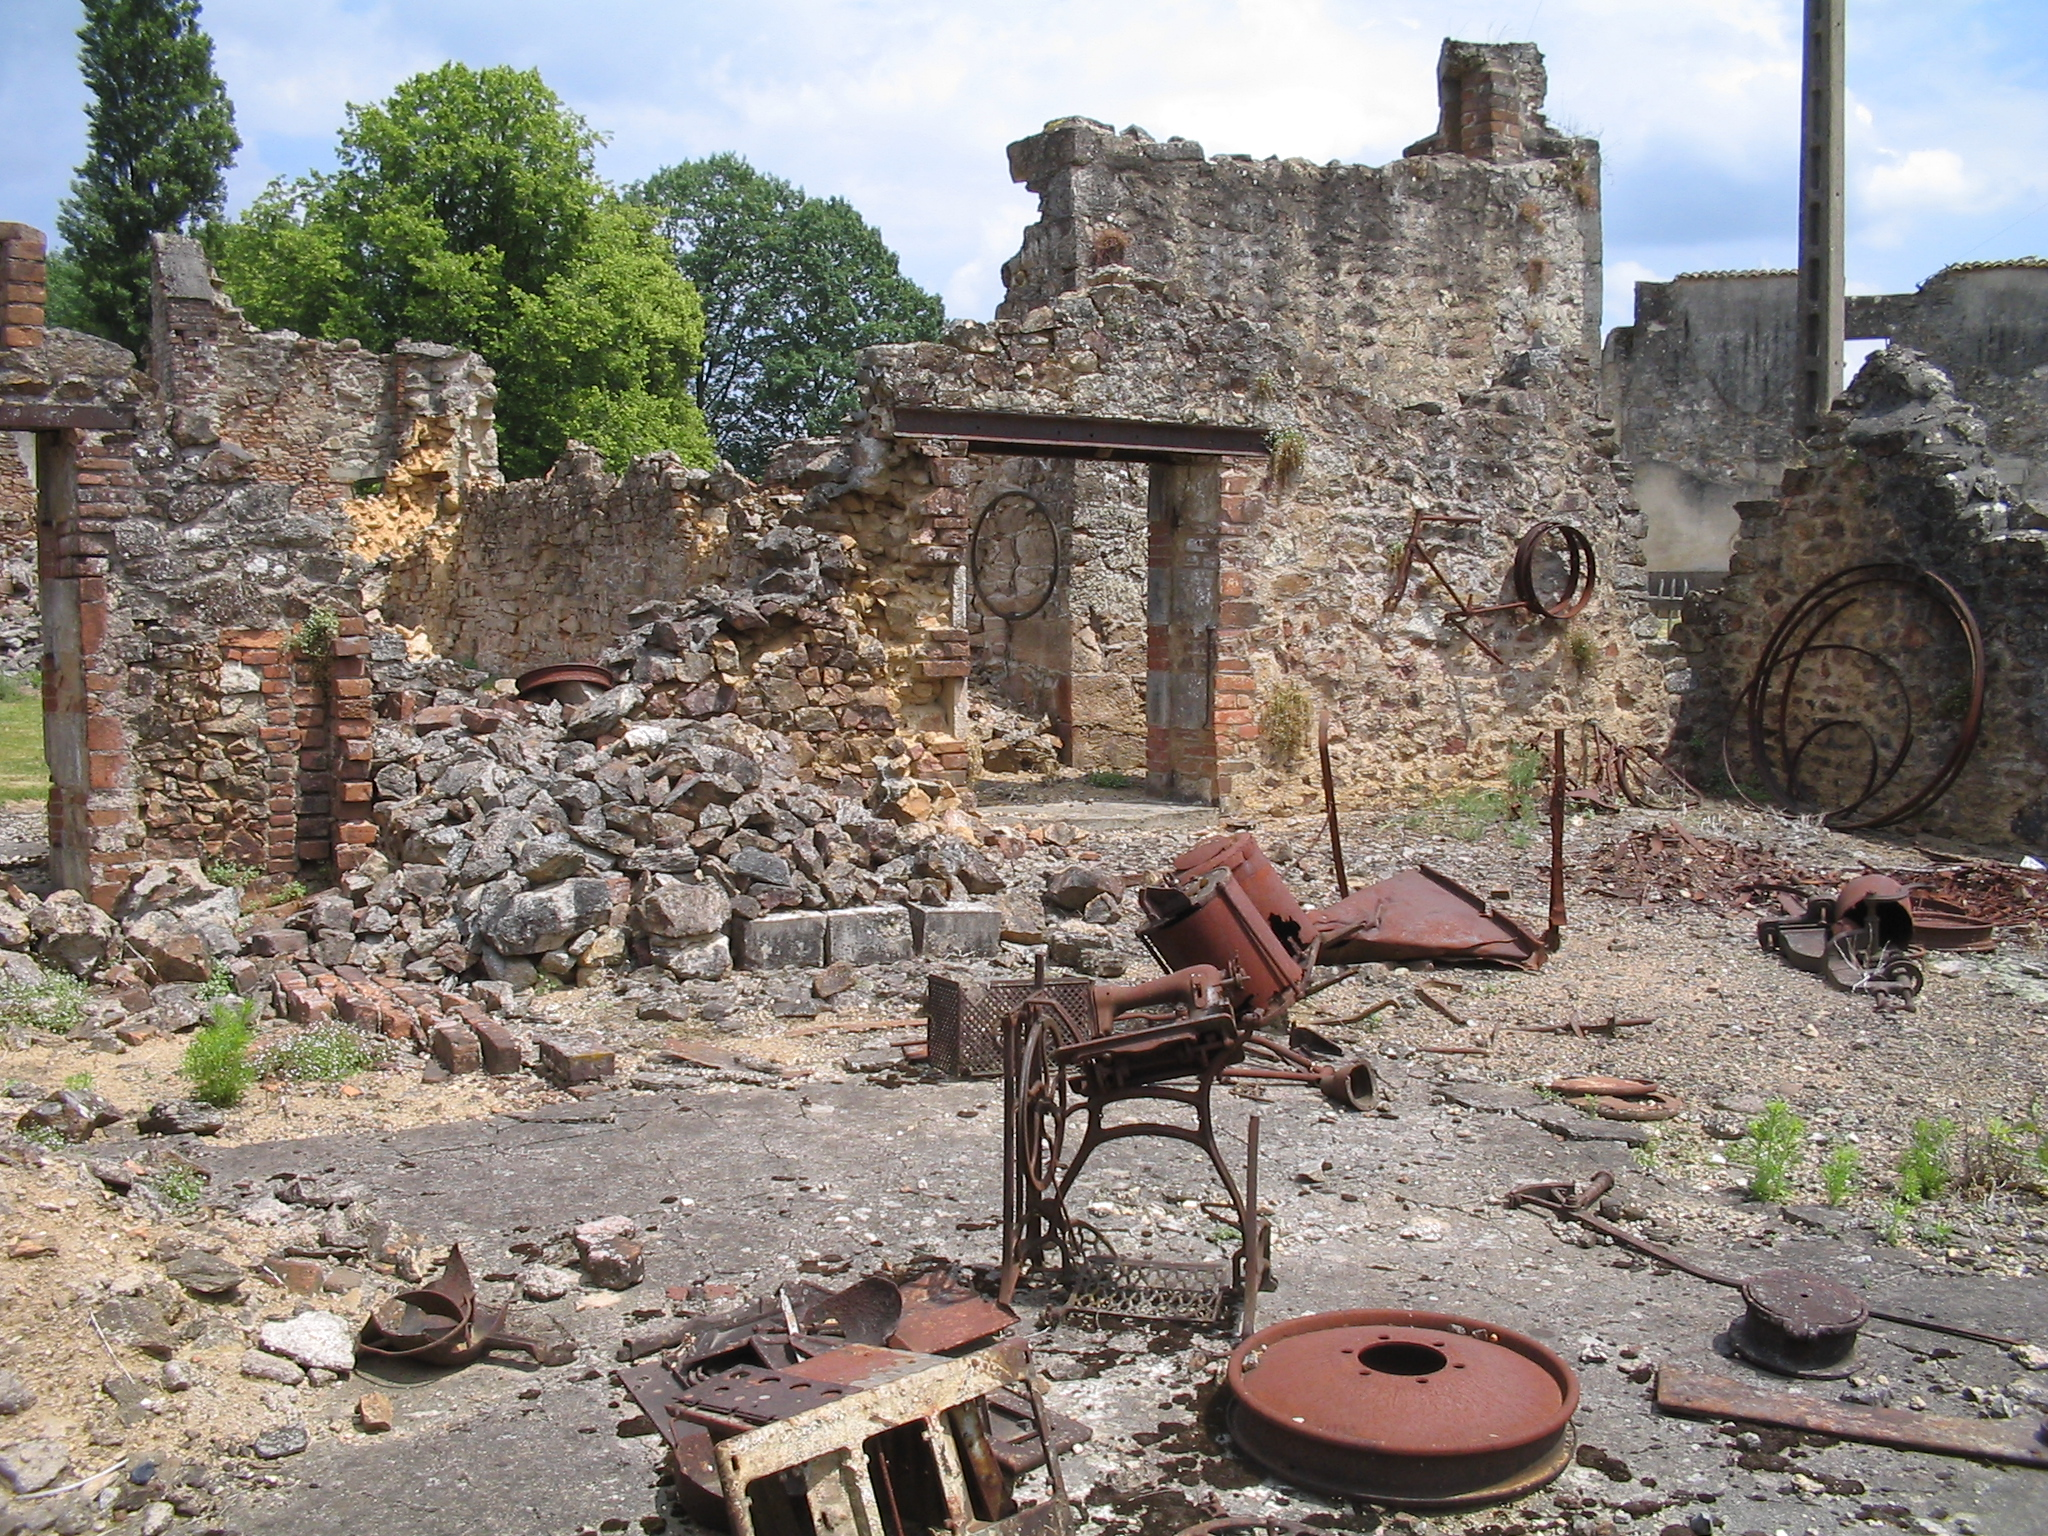 http://upload.wikimedia.org/wikipedia/commons/0/0b/Oradour-sur-Glane-Hardware-1342.jpg